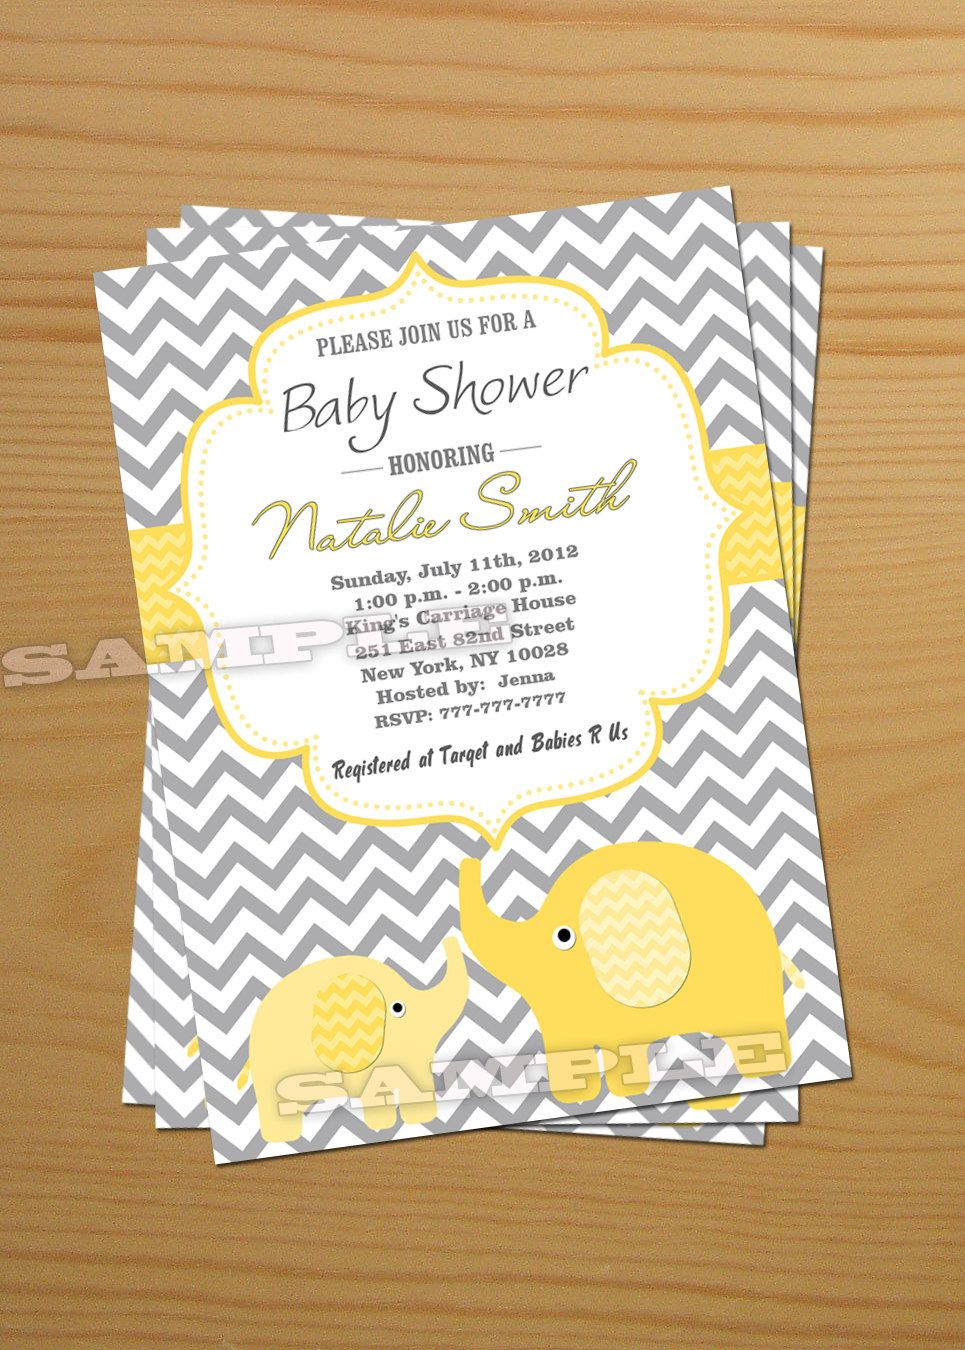 Medium Size of Baby Shower:inspirational Elephant Baby Shower Invitations Photo Concepts Baby Shower Registry List With Baby Shower Nail Designs Plus Indian Baby Shower Together With Baby Shower Crafts As Well As Baby Shower Checklist